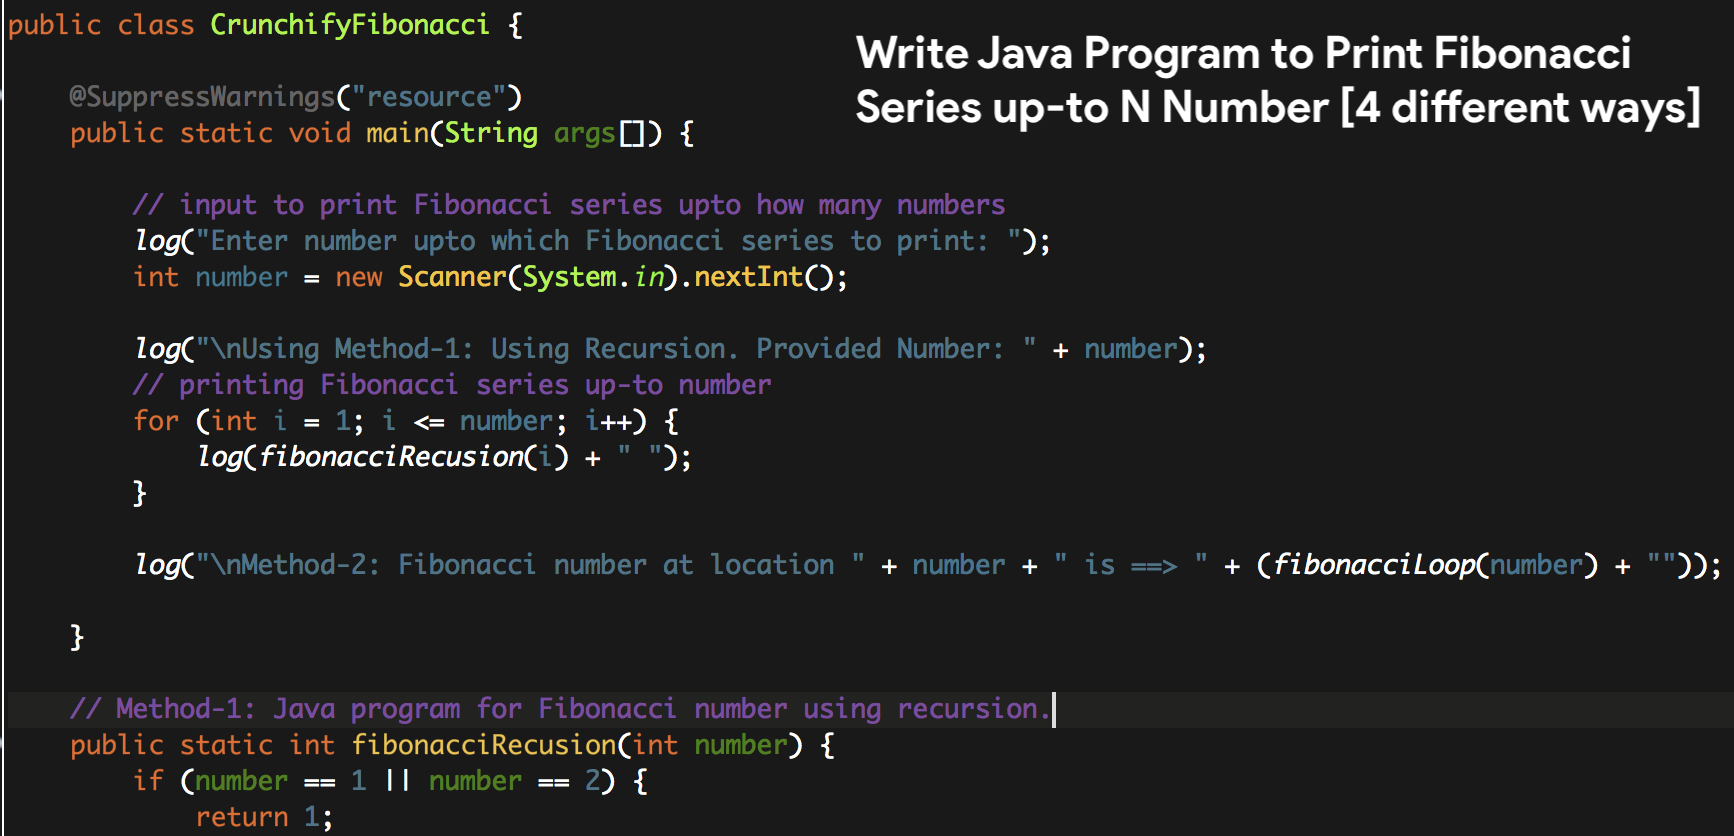 Write Java Program to Print Fibonacci Series up-to N Number